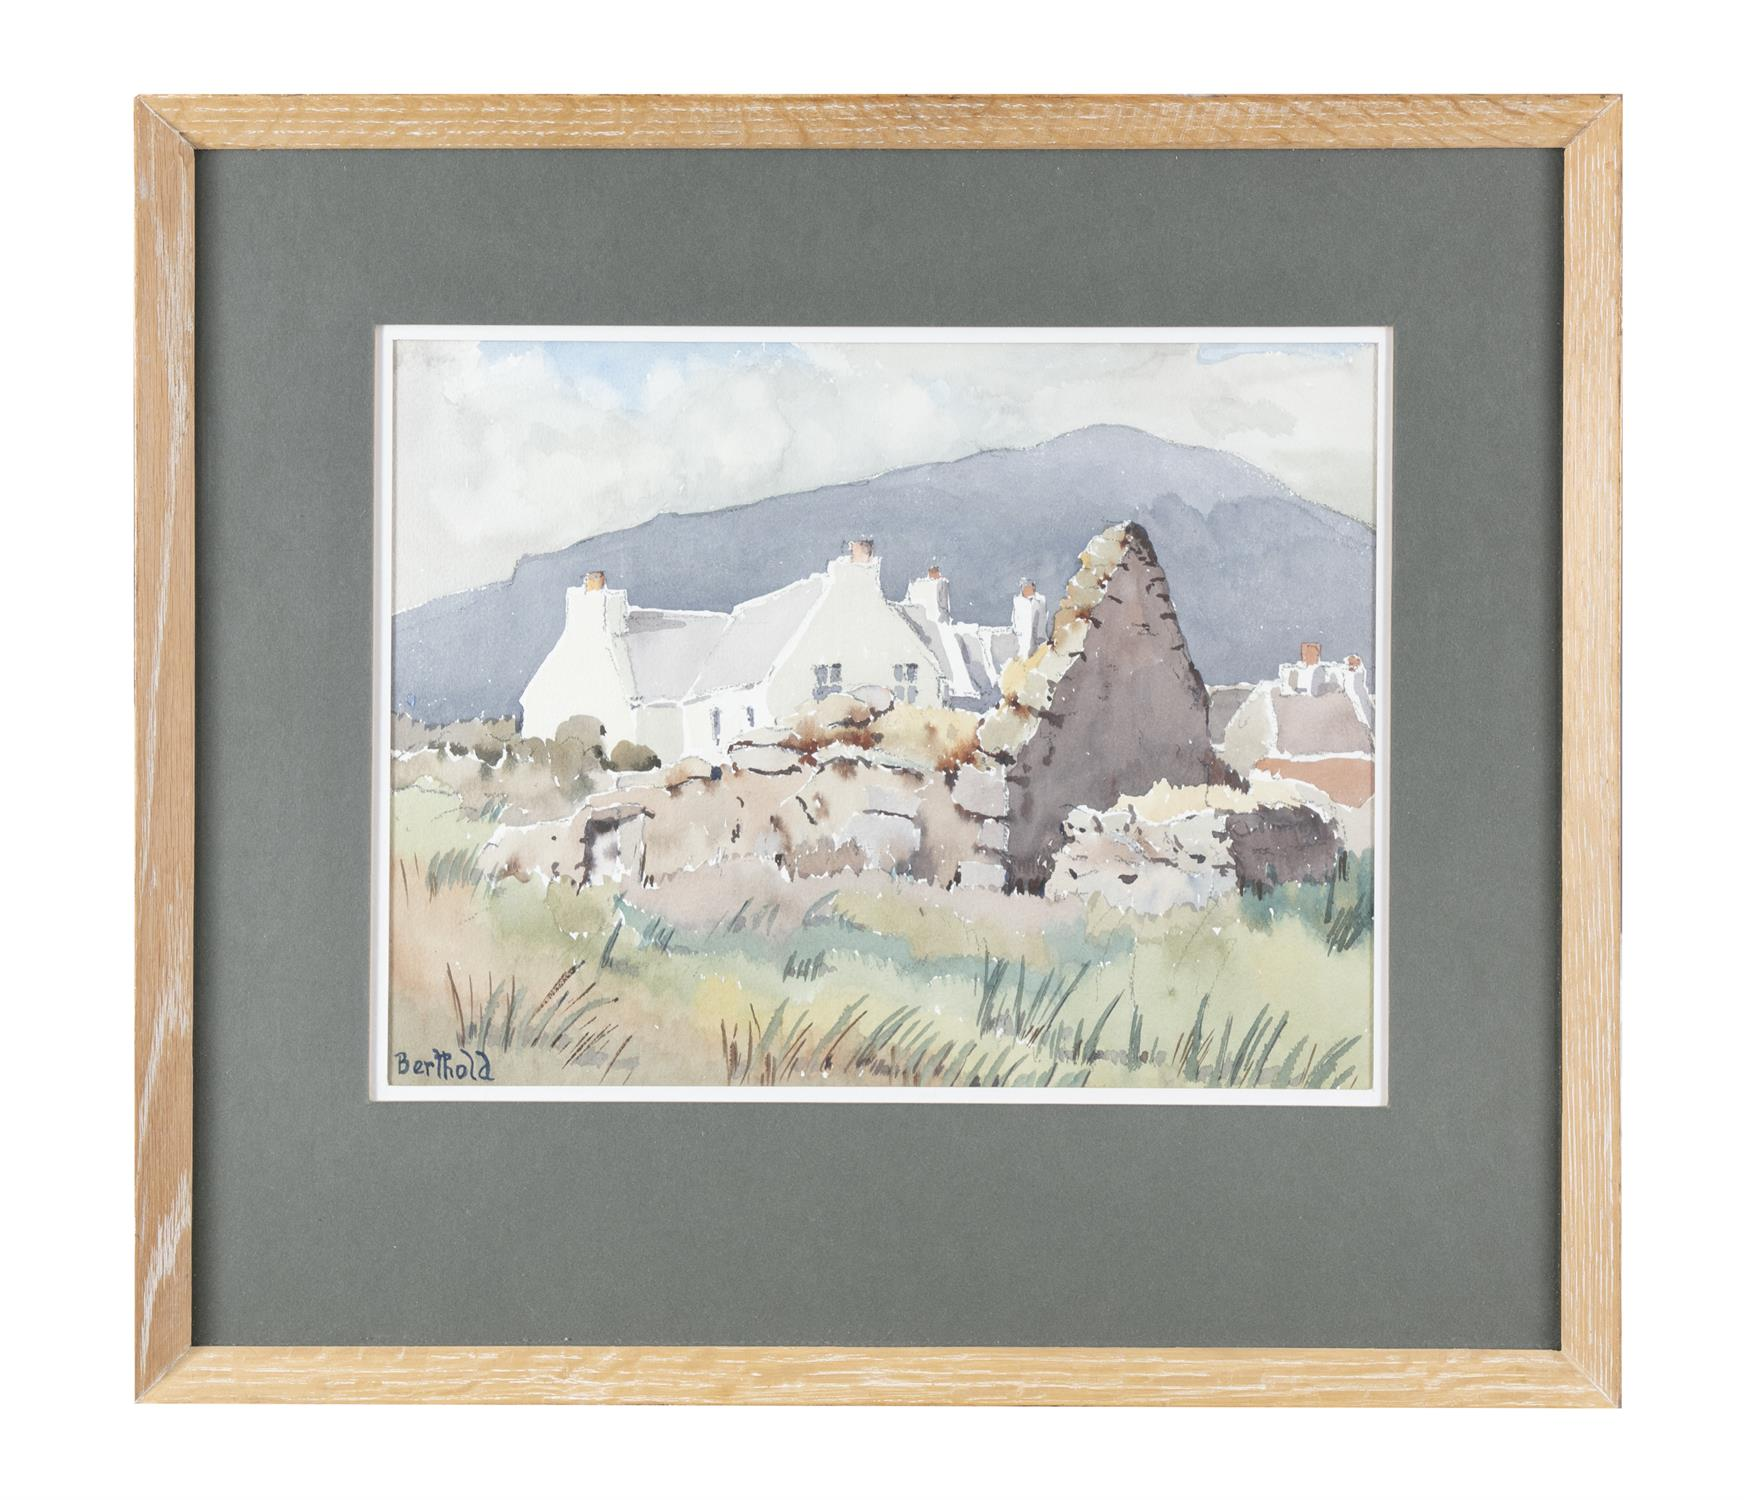 """BERTHOLD DUNNE Old Ruin, Keel, Achill Watercolour, 29 x 38.5cm (11.5 x 15"""") Signed; title"""